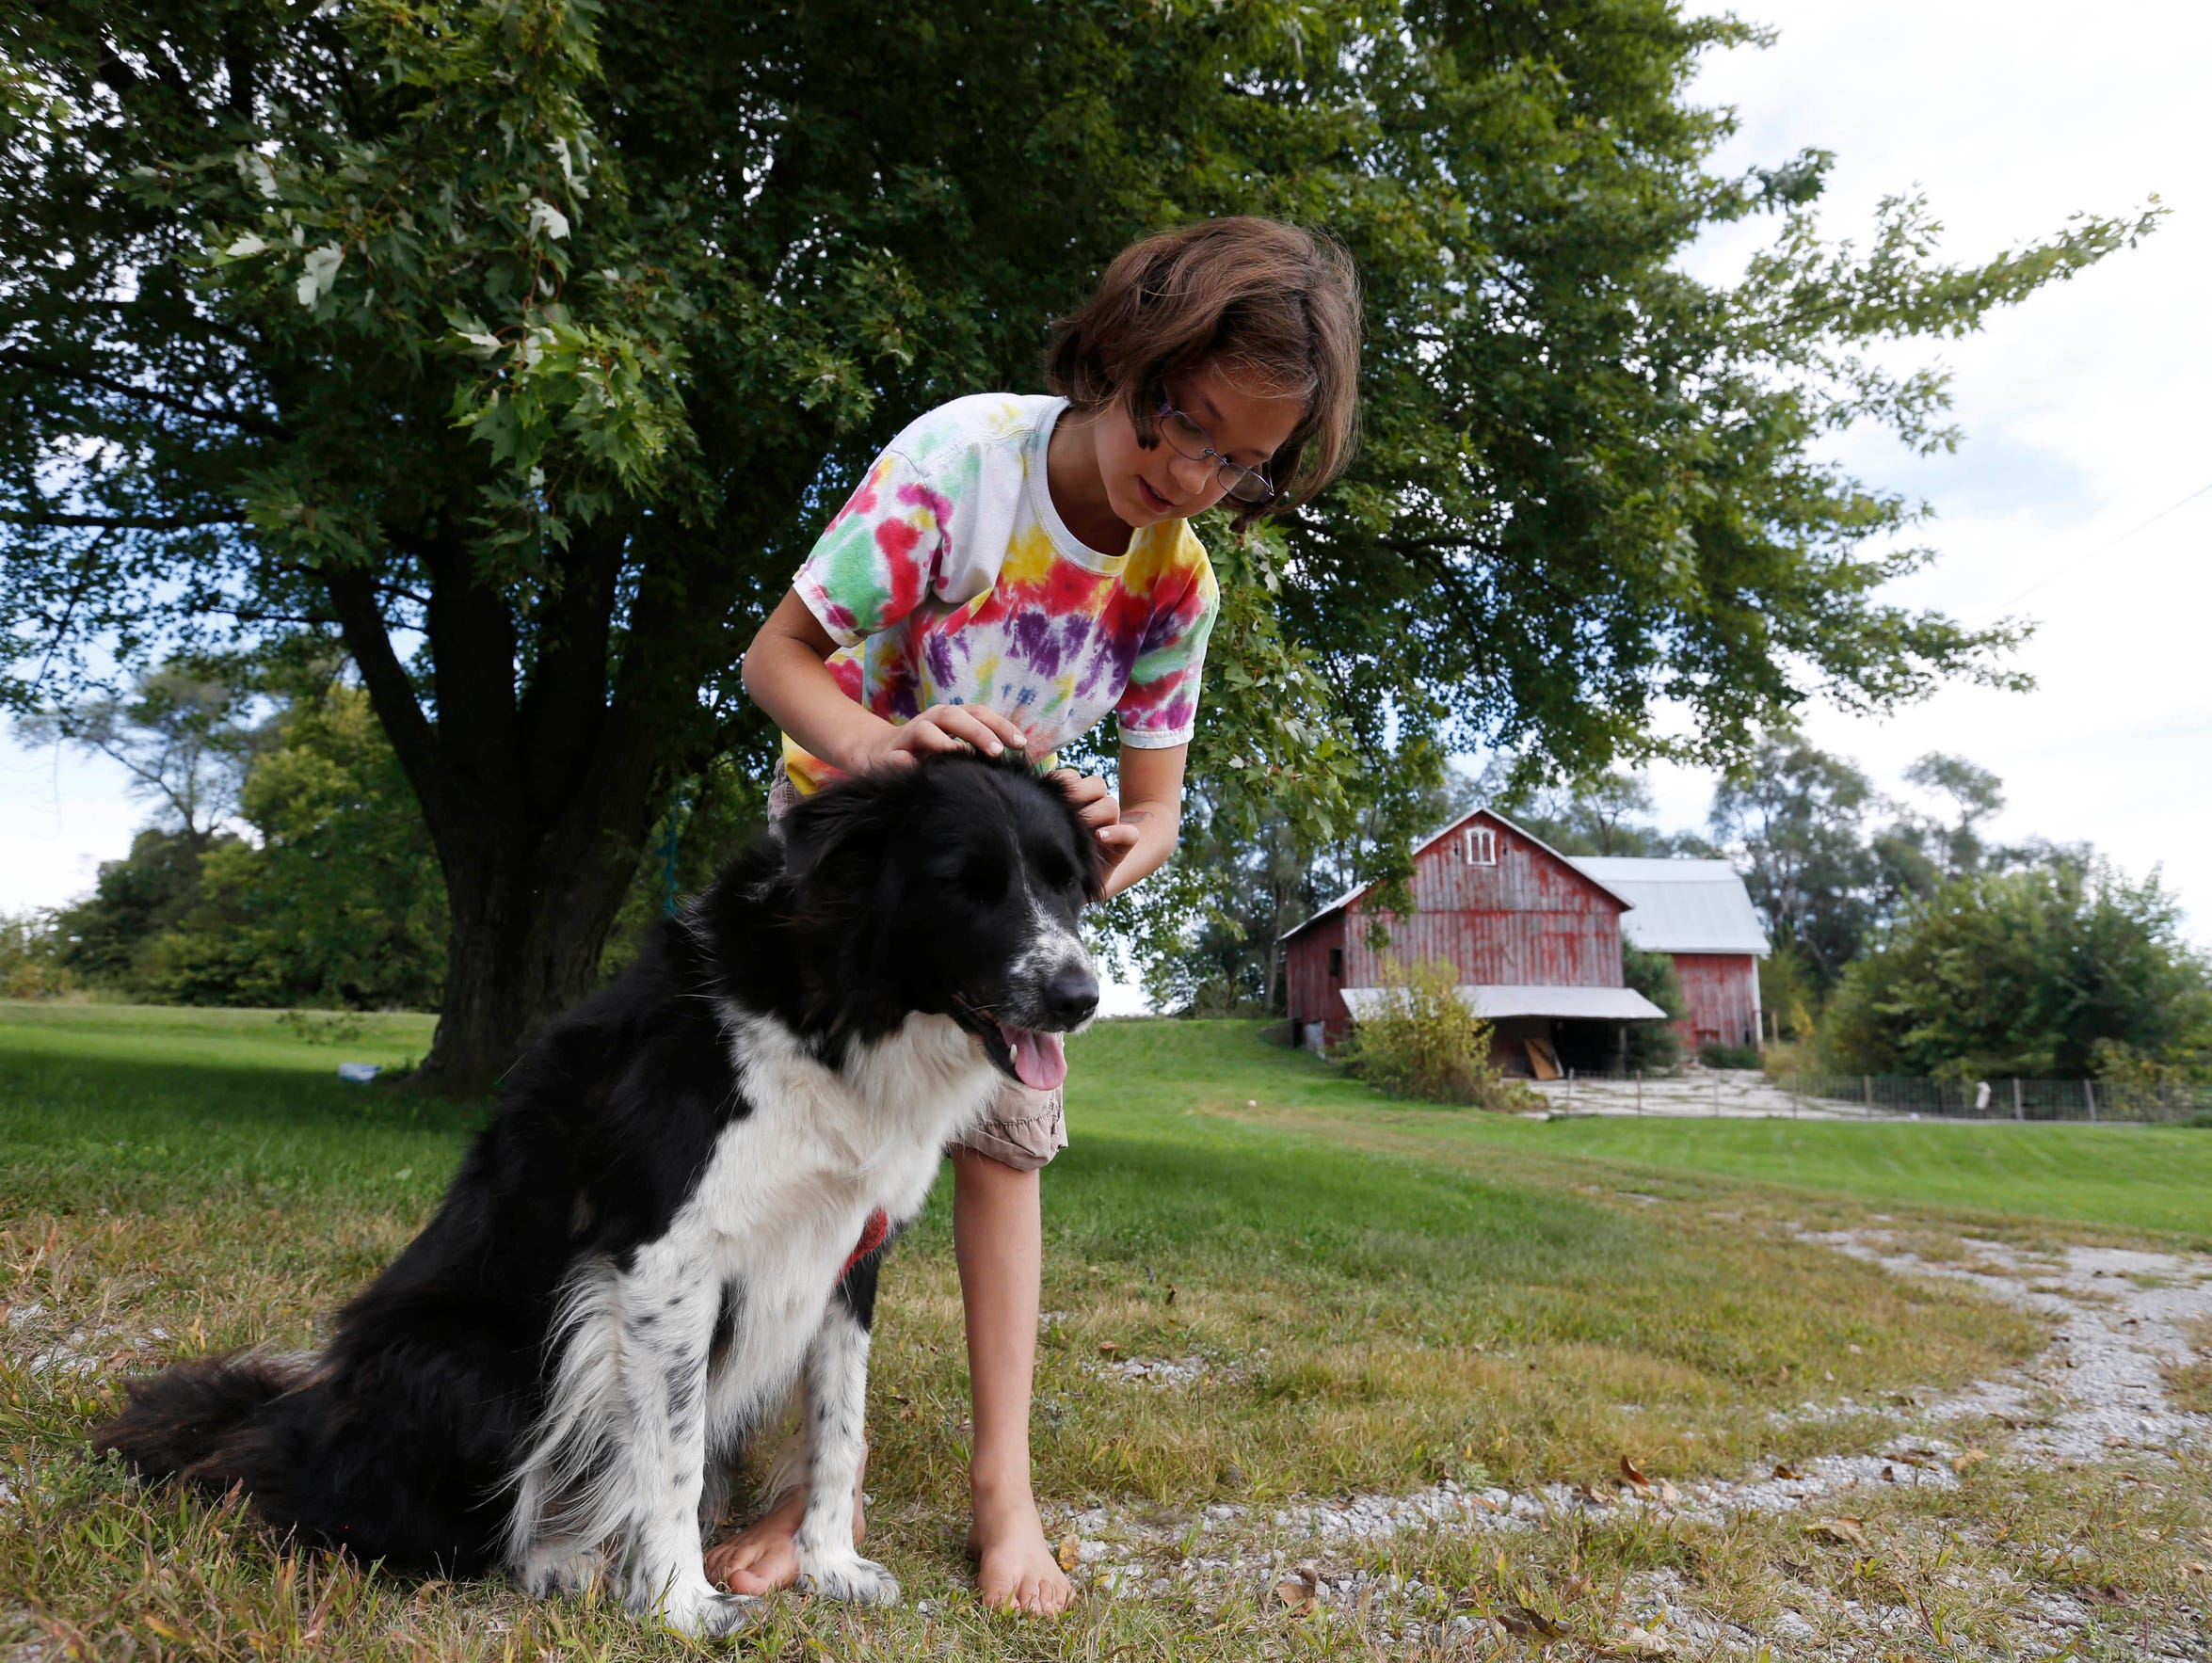 Kali Miller, 9, plays with her dog, Lady, as she talks